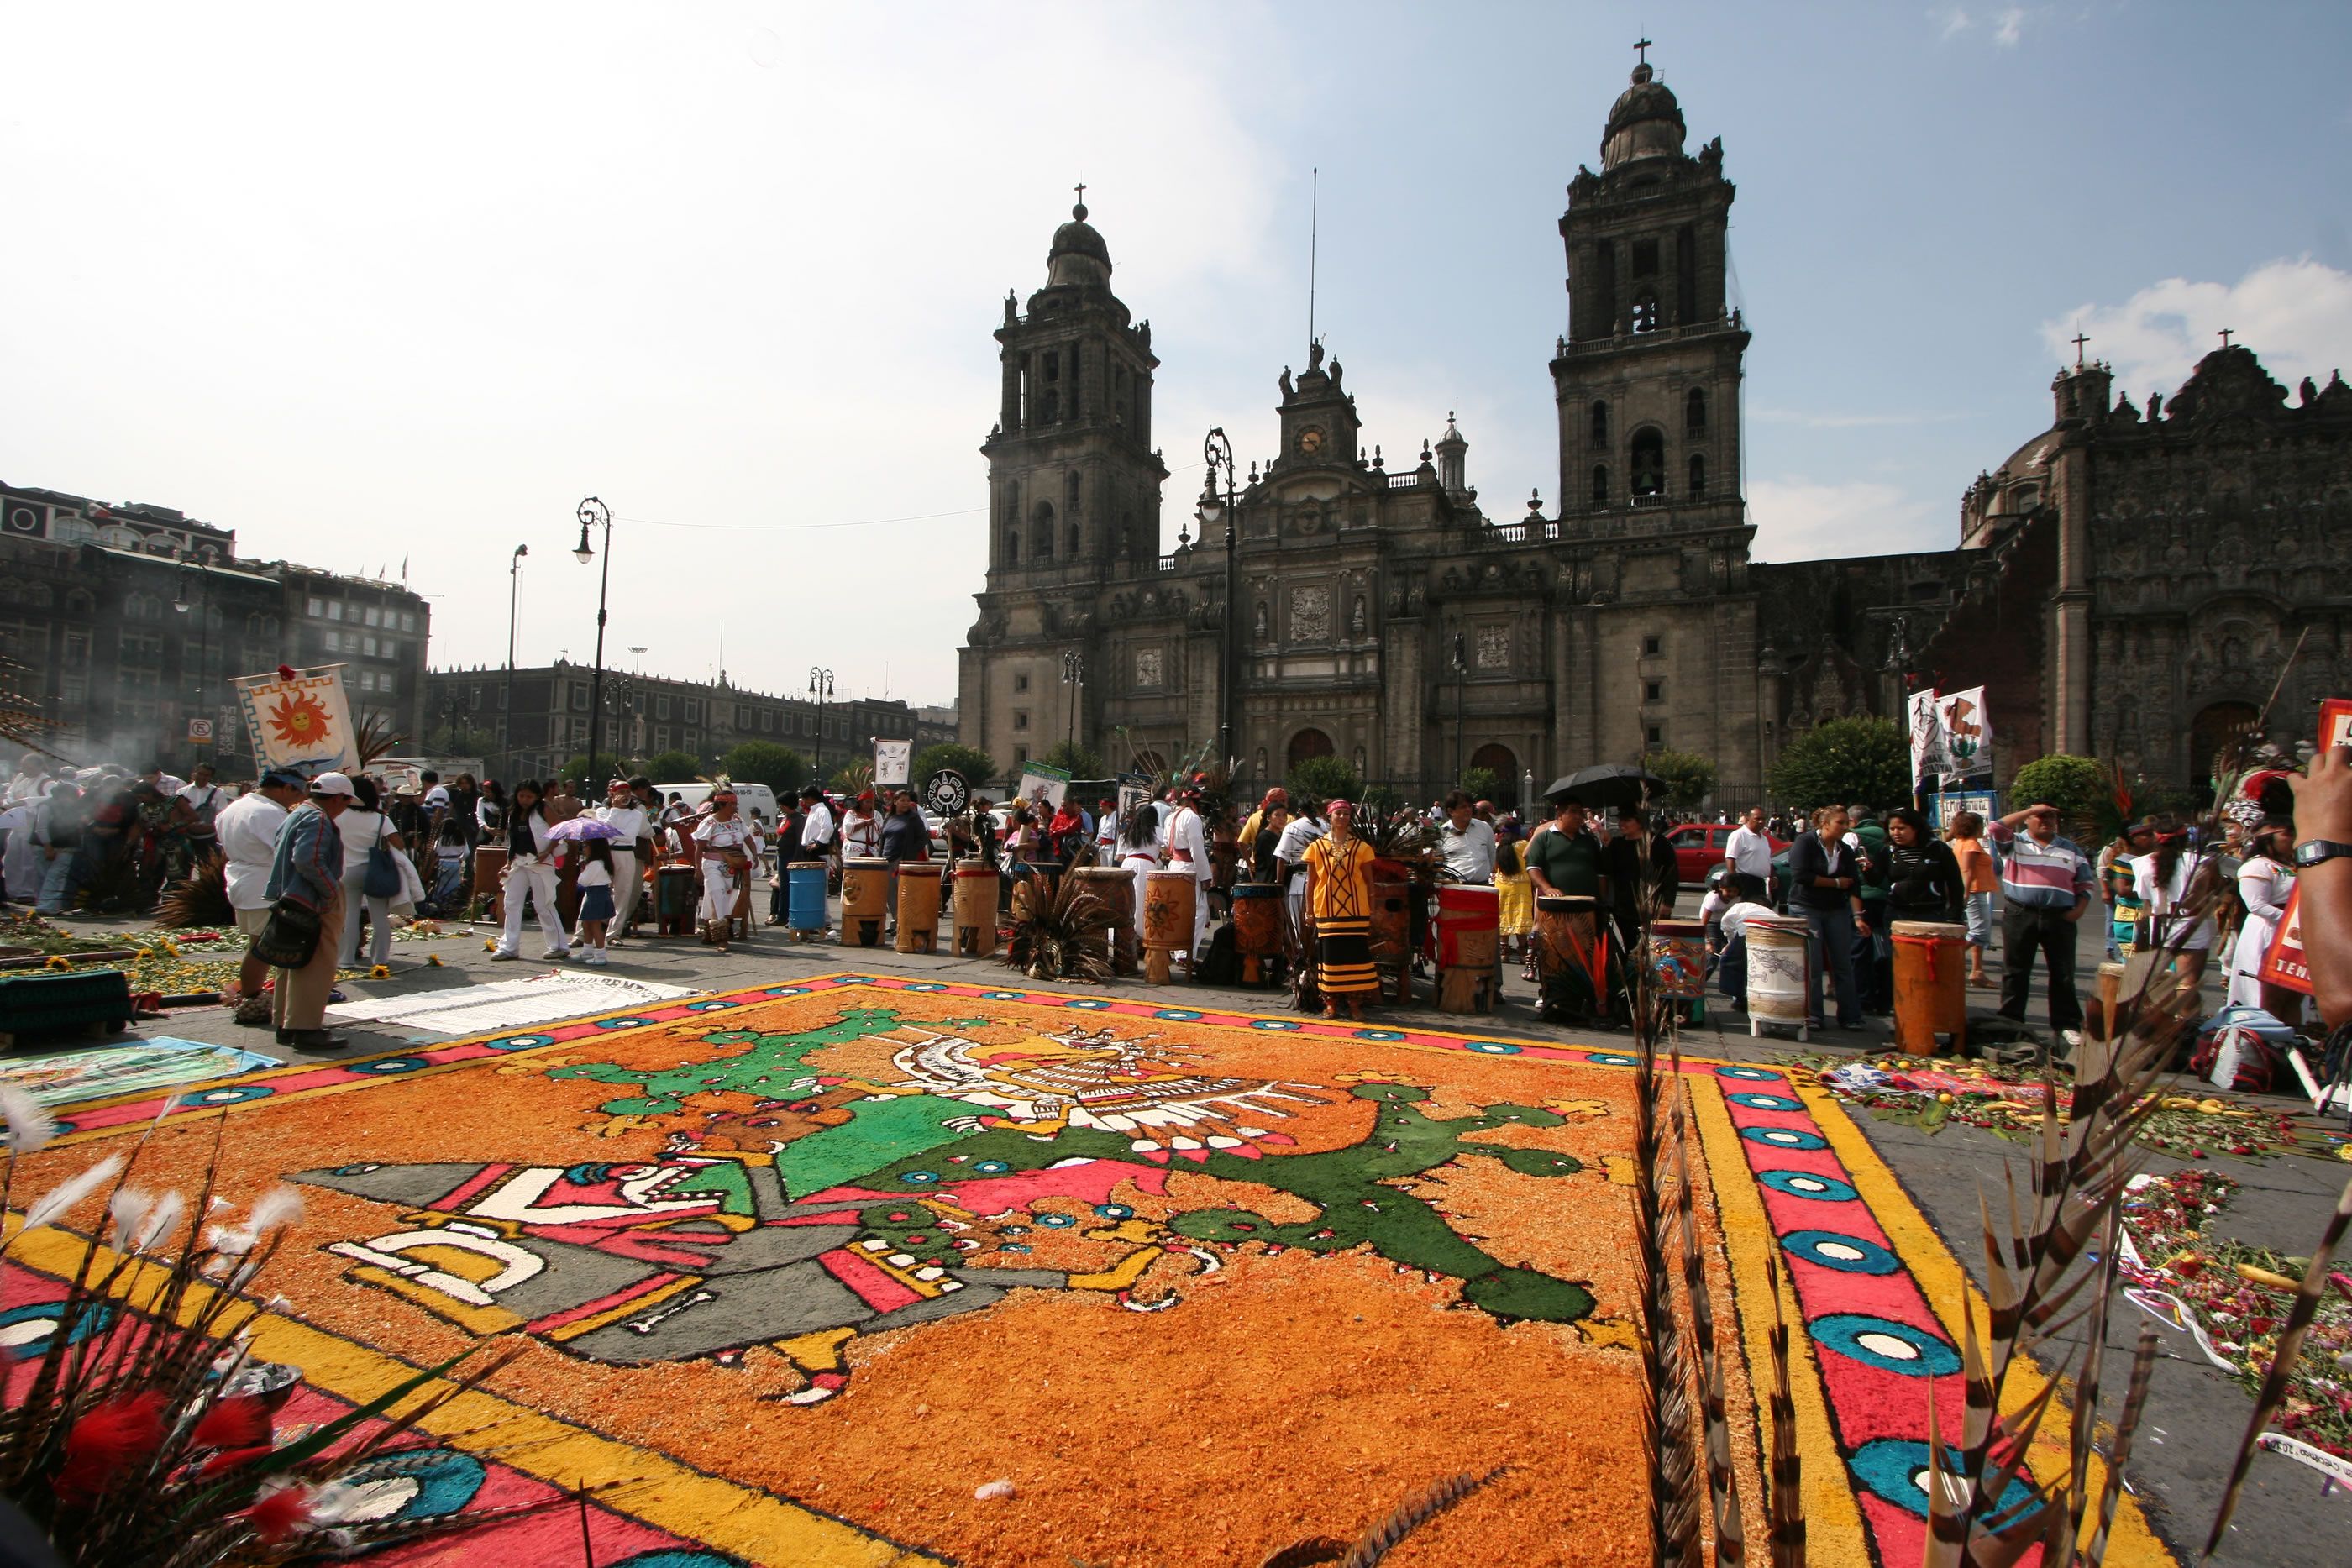 An Aztec Display in the Zocalo in Mexico City